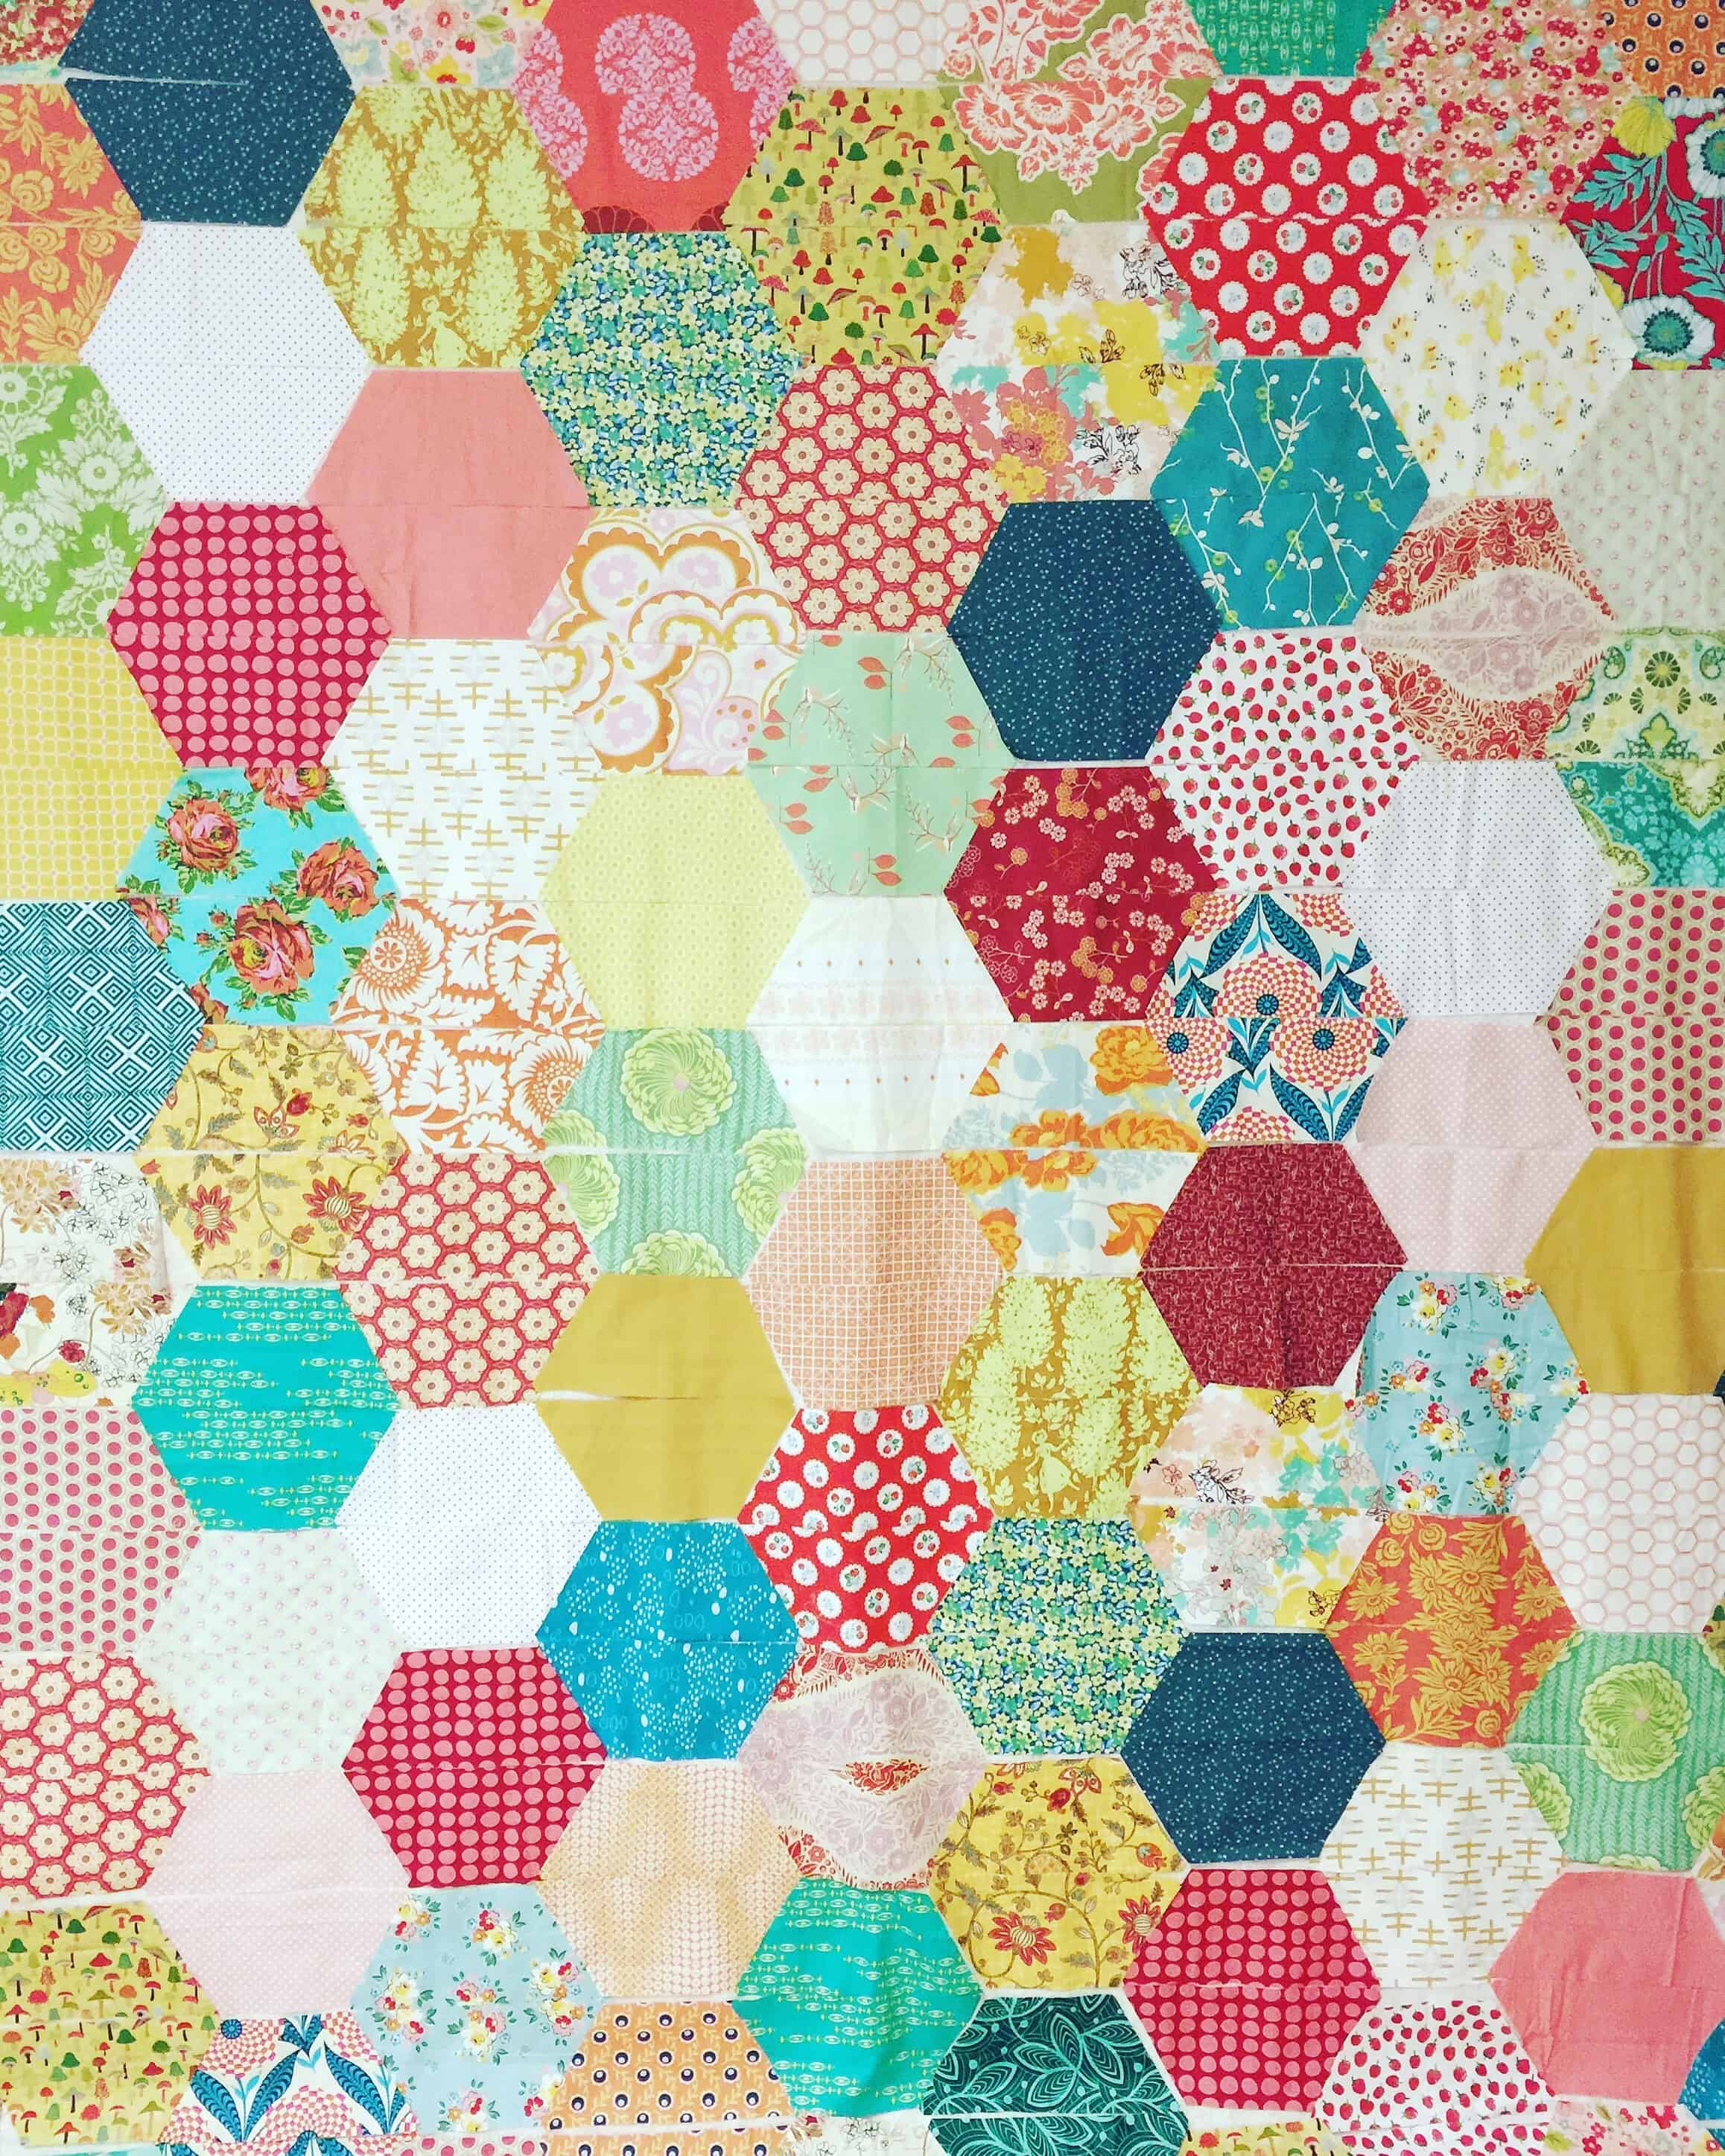 Free Quilt Pattern For Hexagon : How to make a hexagon quilt with half hexies free quilt pattern 5 different sizes